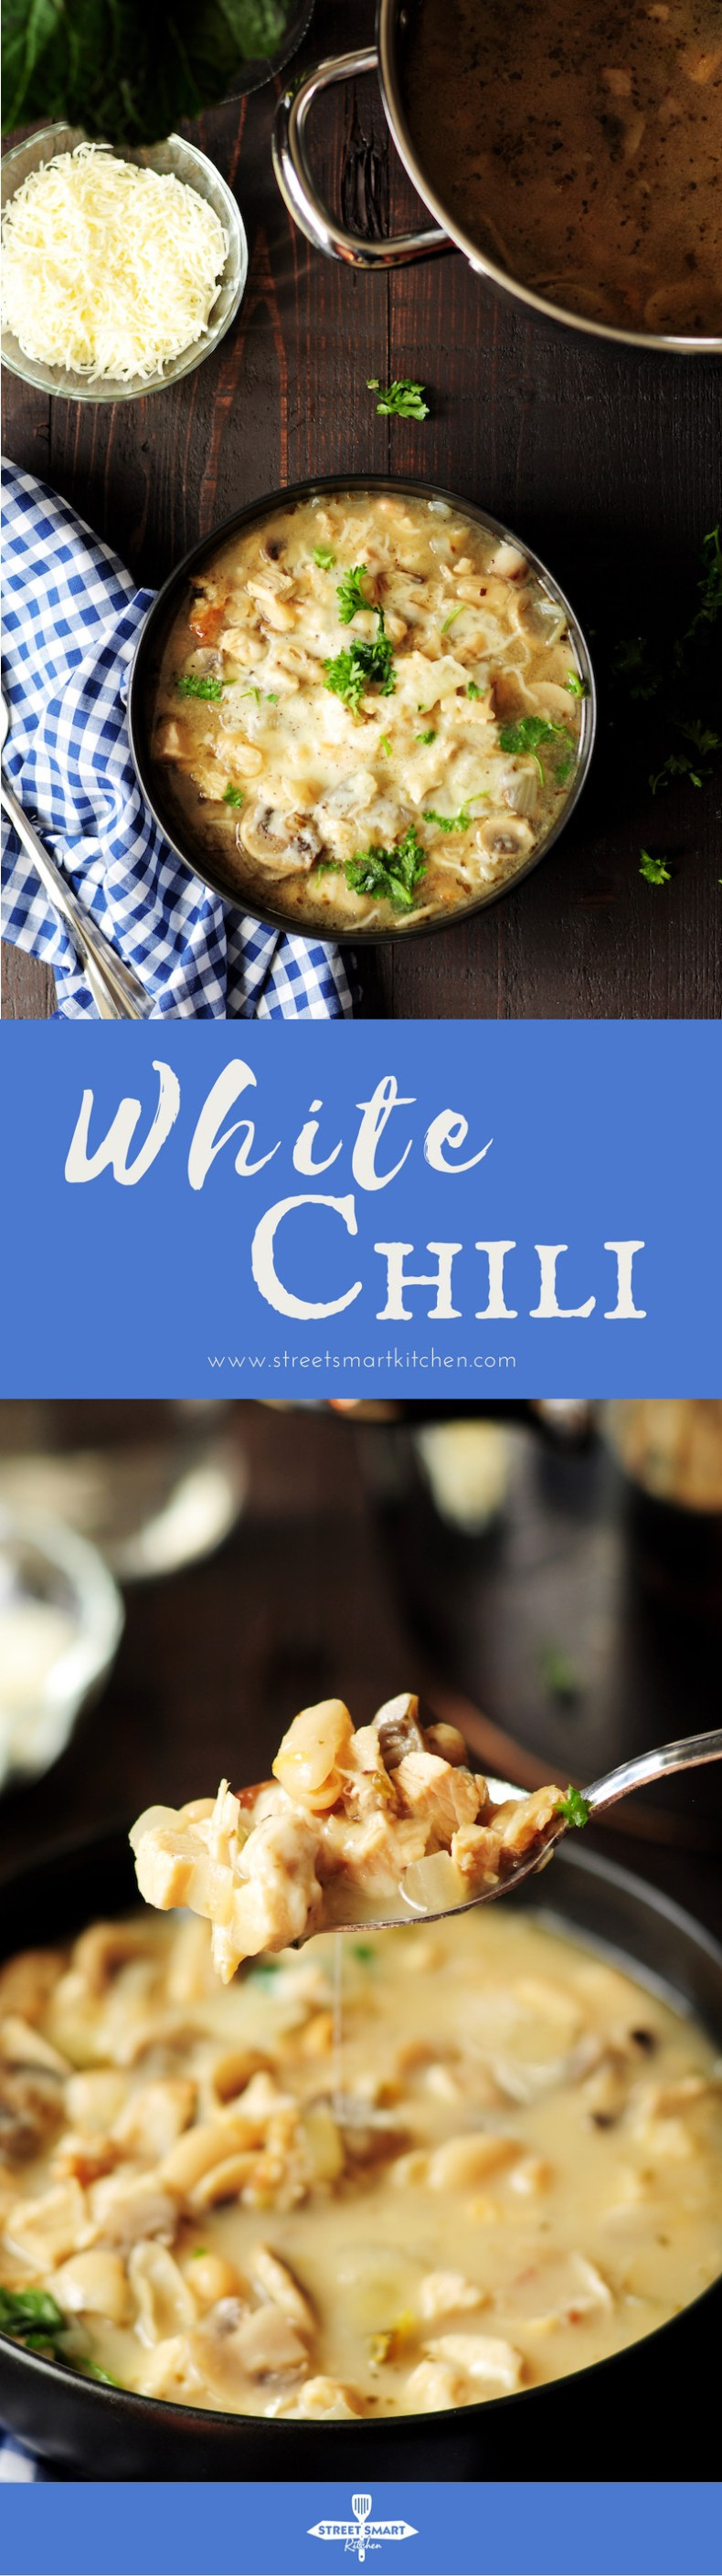 This white chili recipe offers a different take on dark versions of chili. While still giving you a hearty meal, it provides a healthy choice with a lighter color, flavor, and consistency.